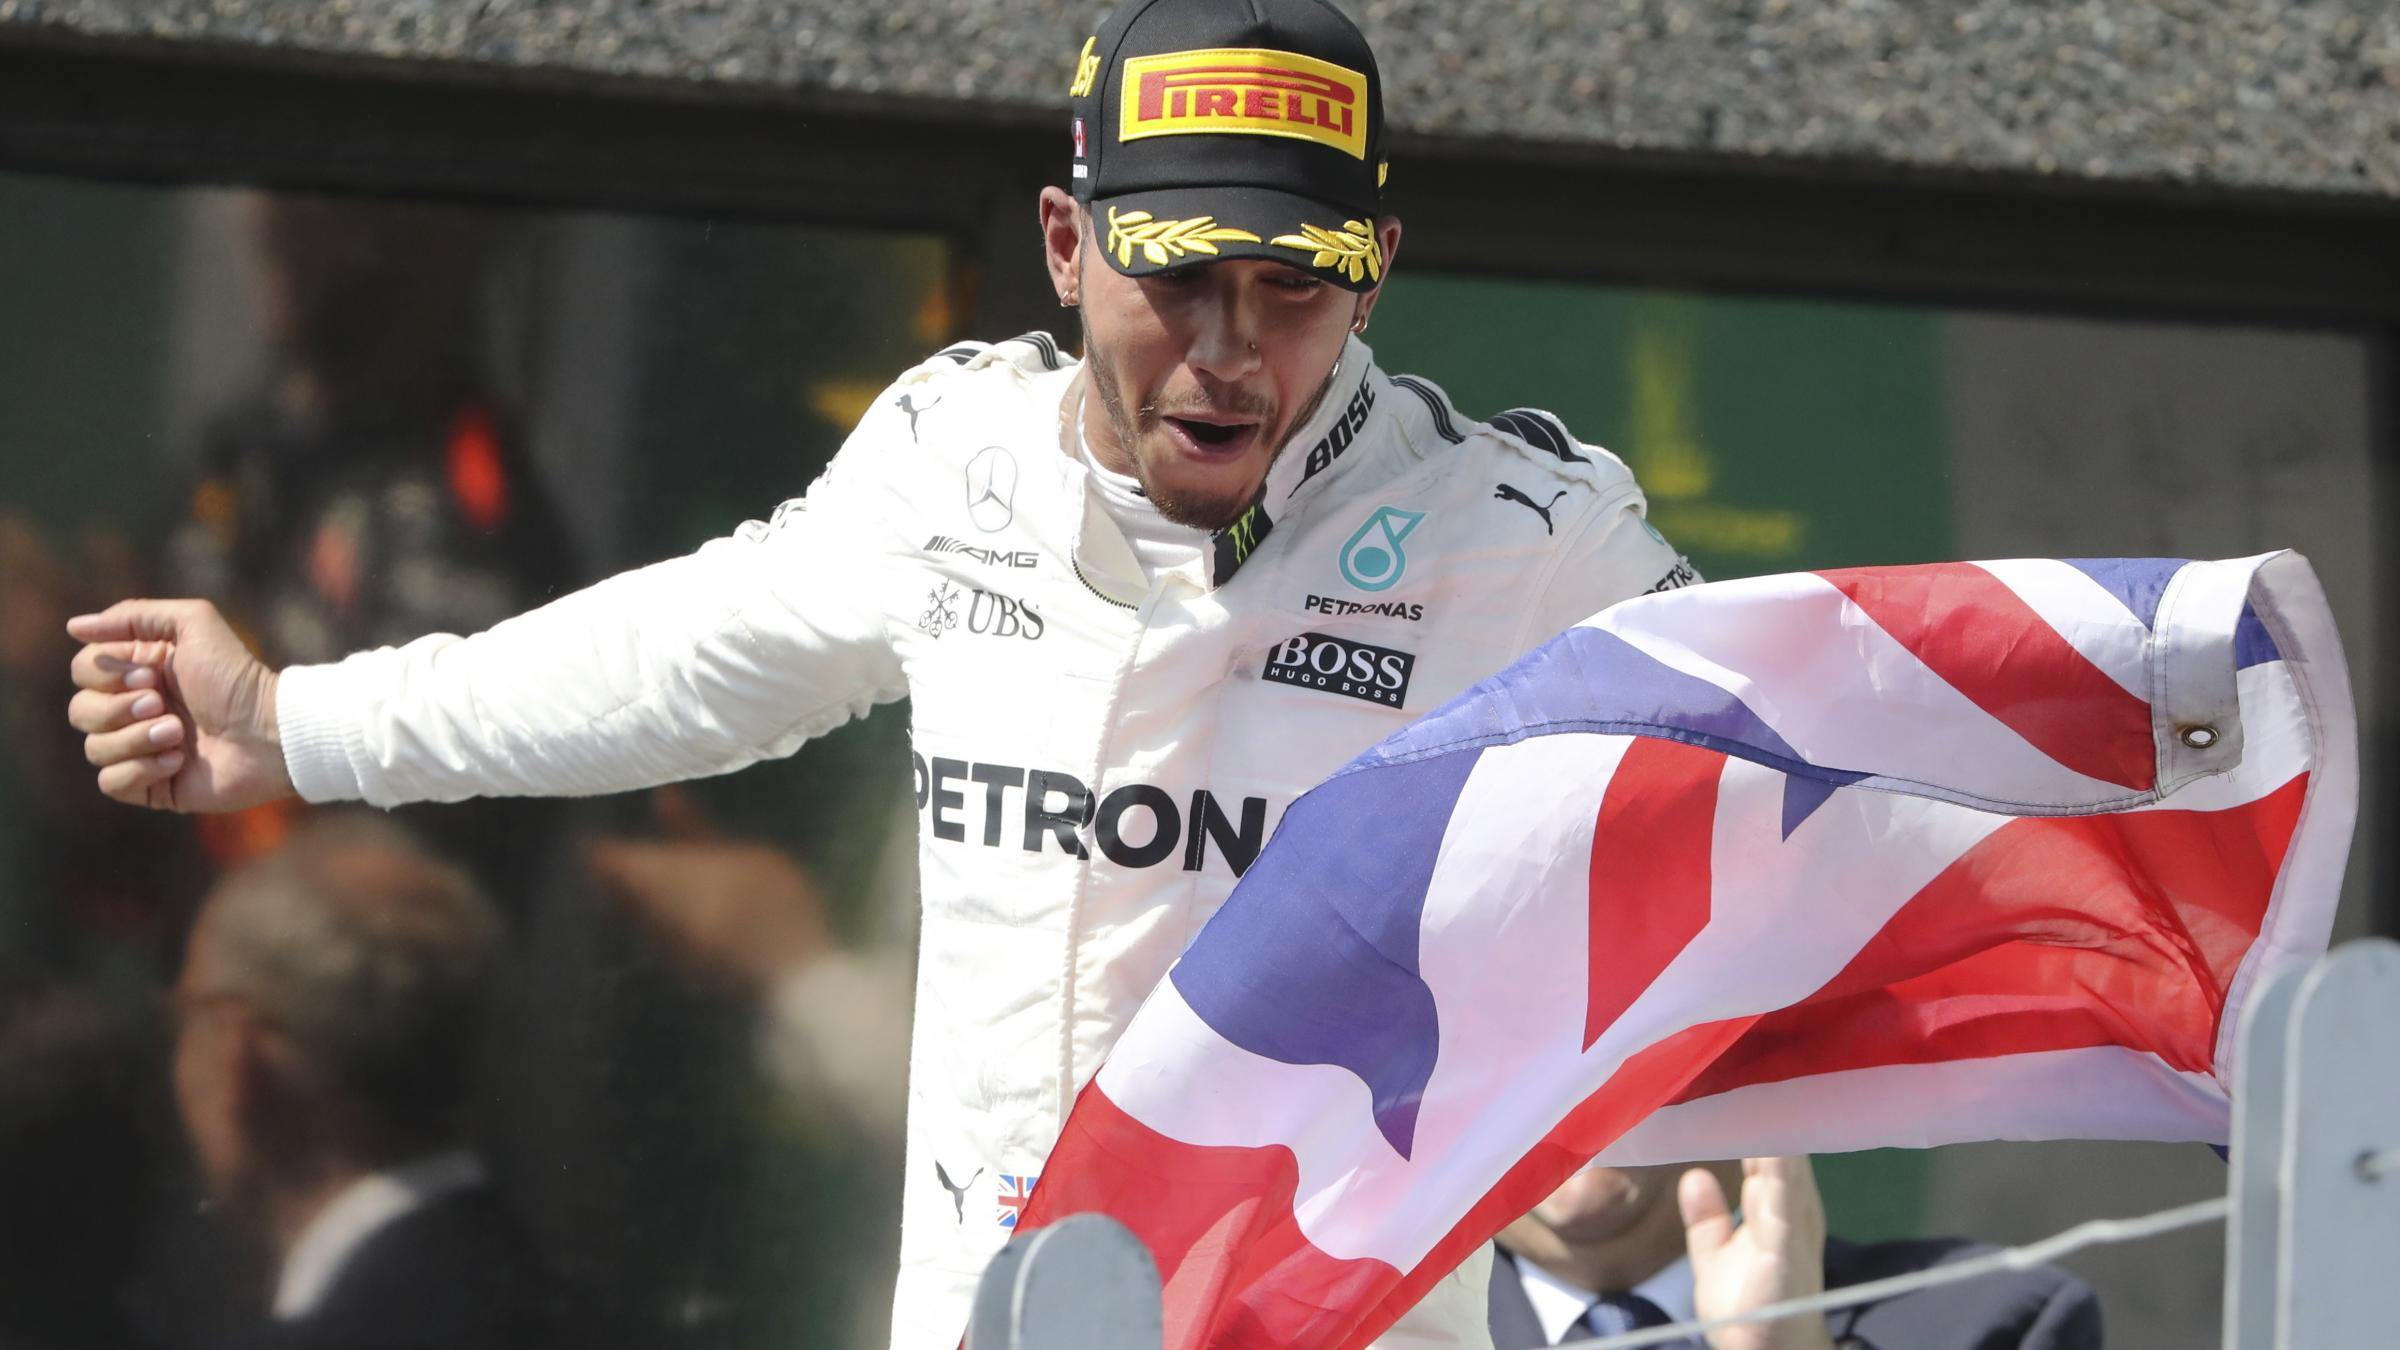 Hamilton wins third straight Canadian Grand Prix, Canada's Stroll gets first points